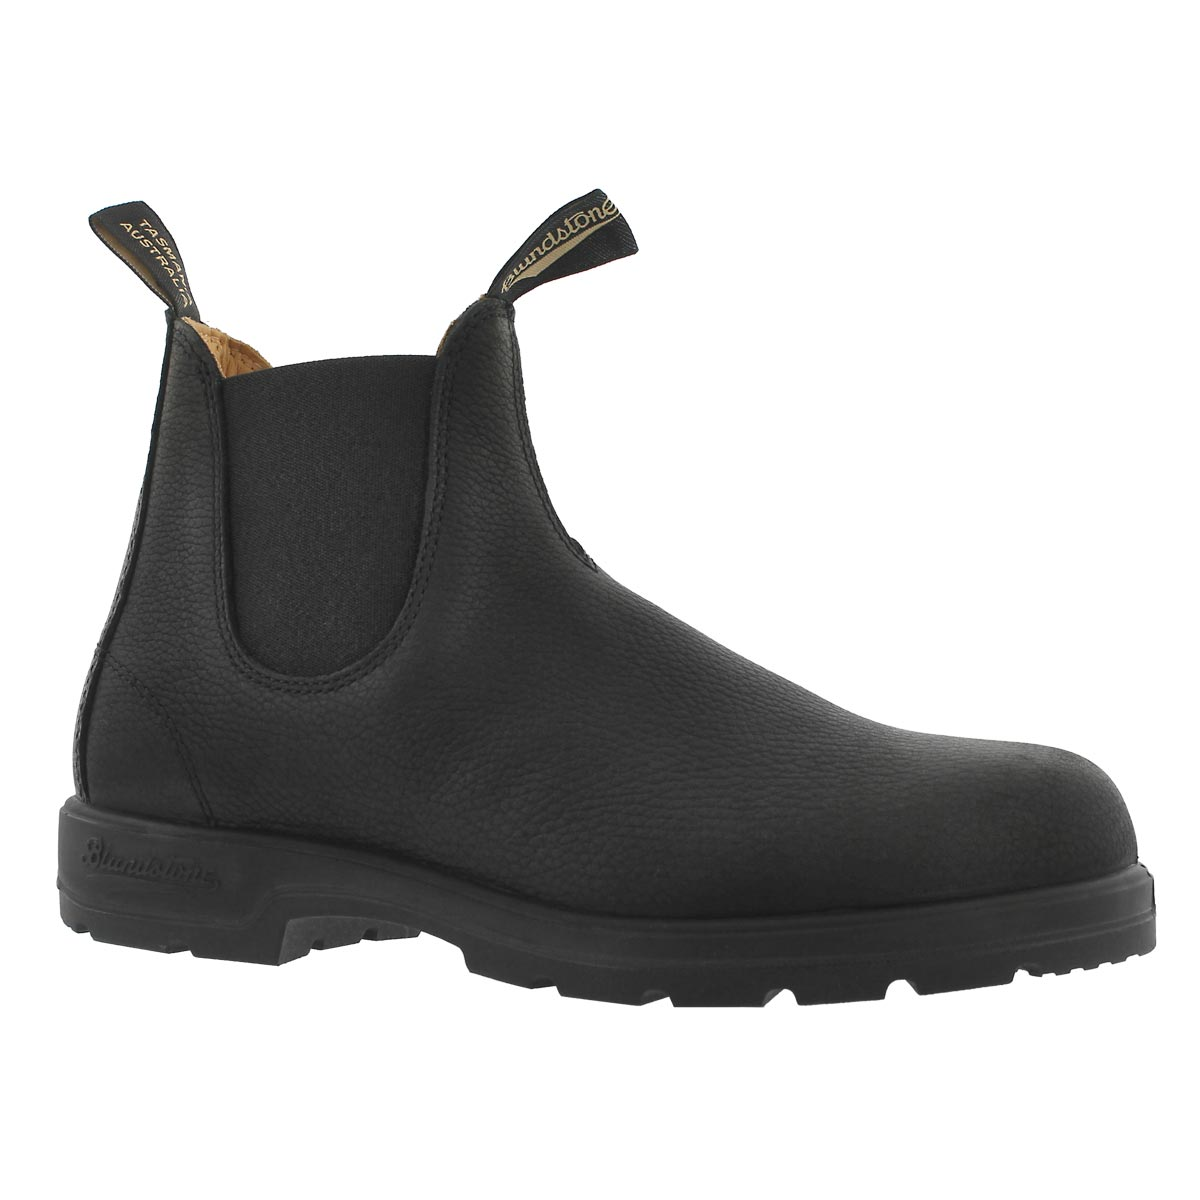 Mns Lthr Lined pebble blk twin gore boot